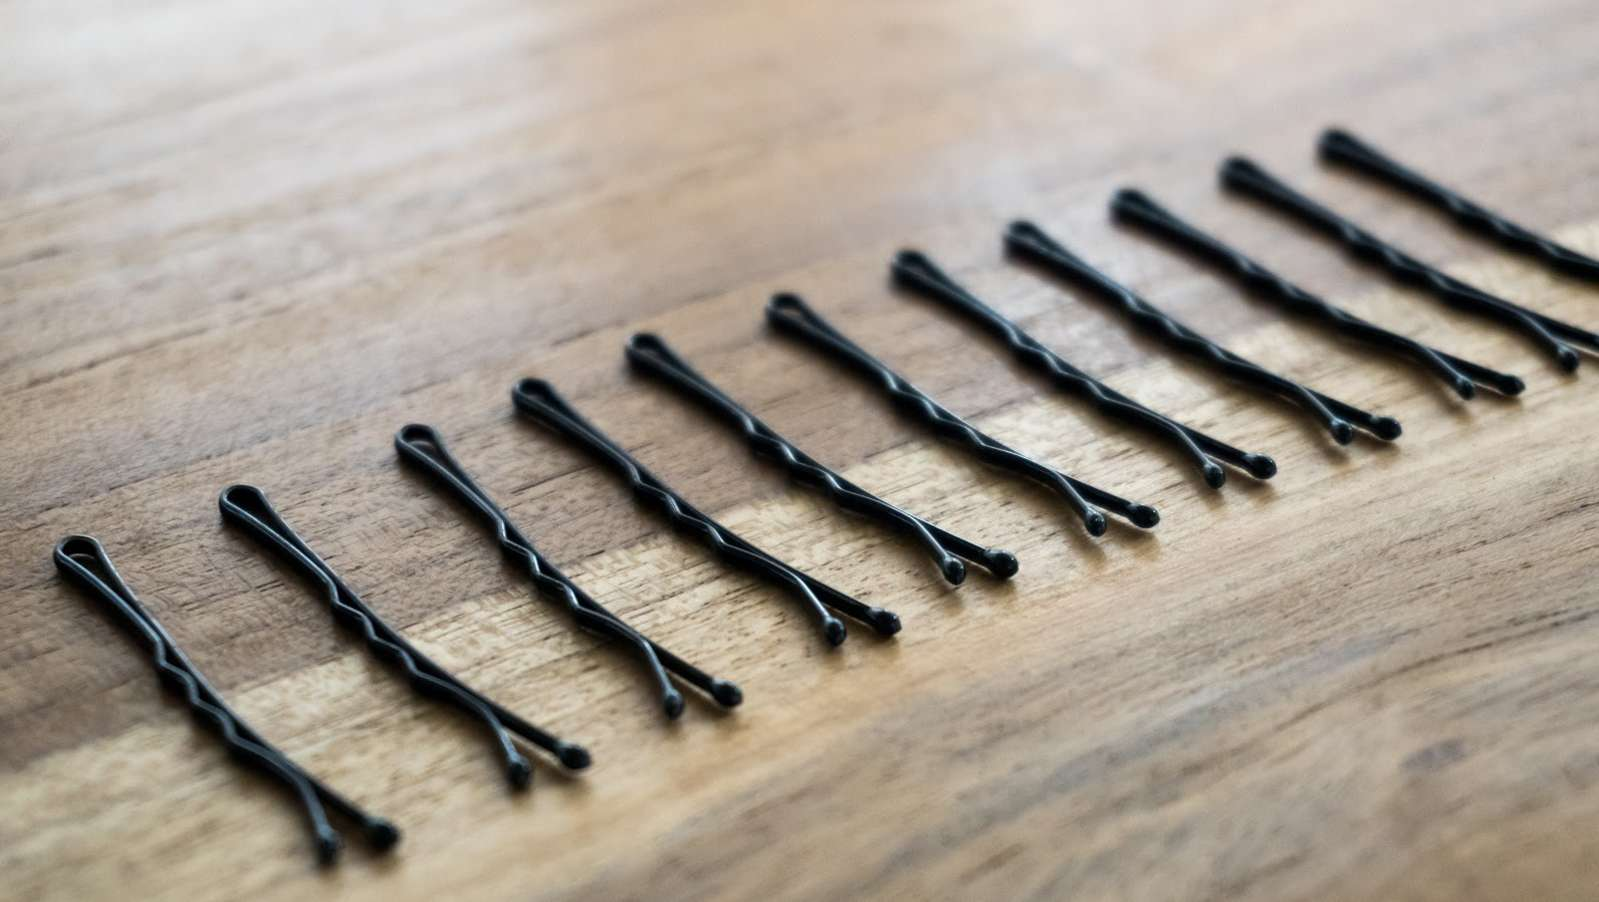 12 Unexpected Household Uses for Bobby Pins